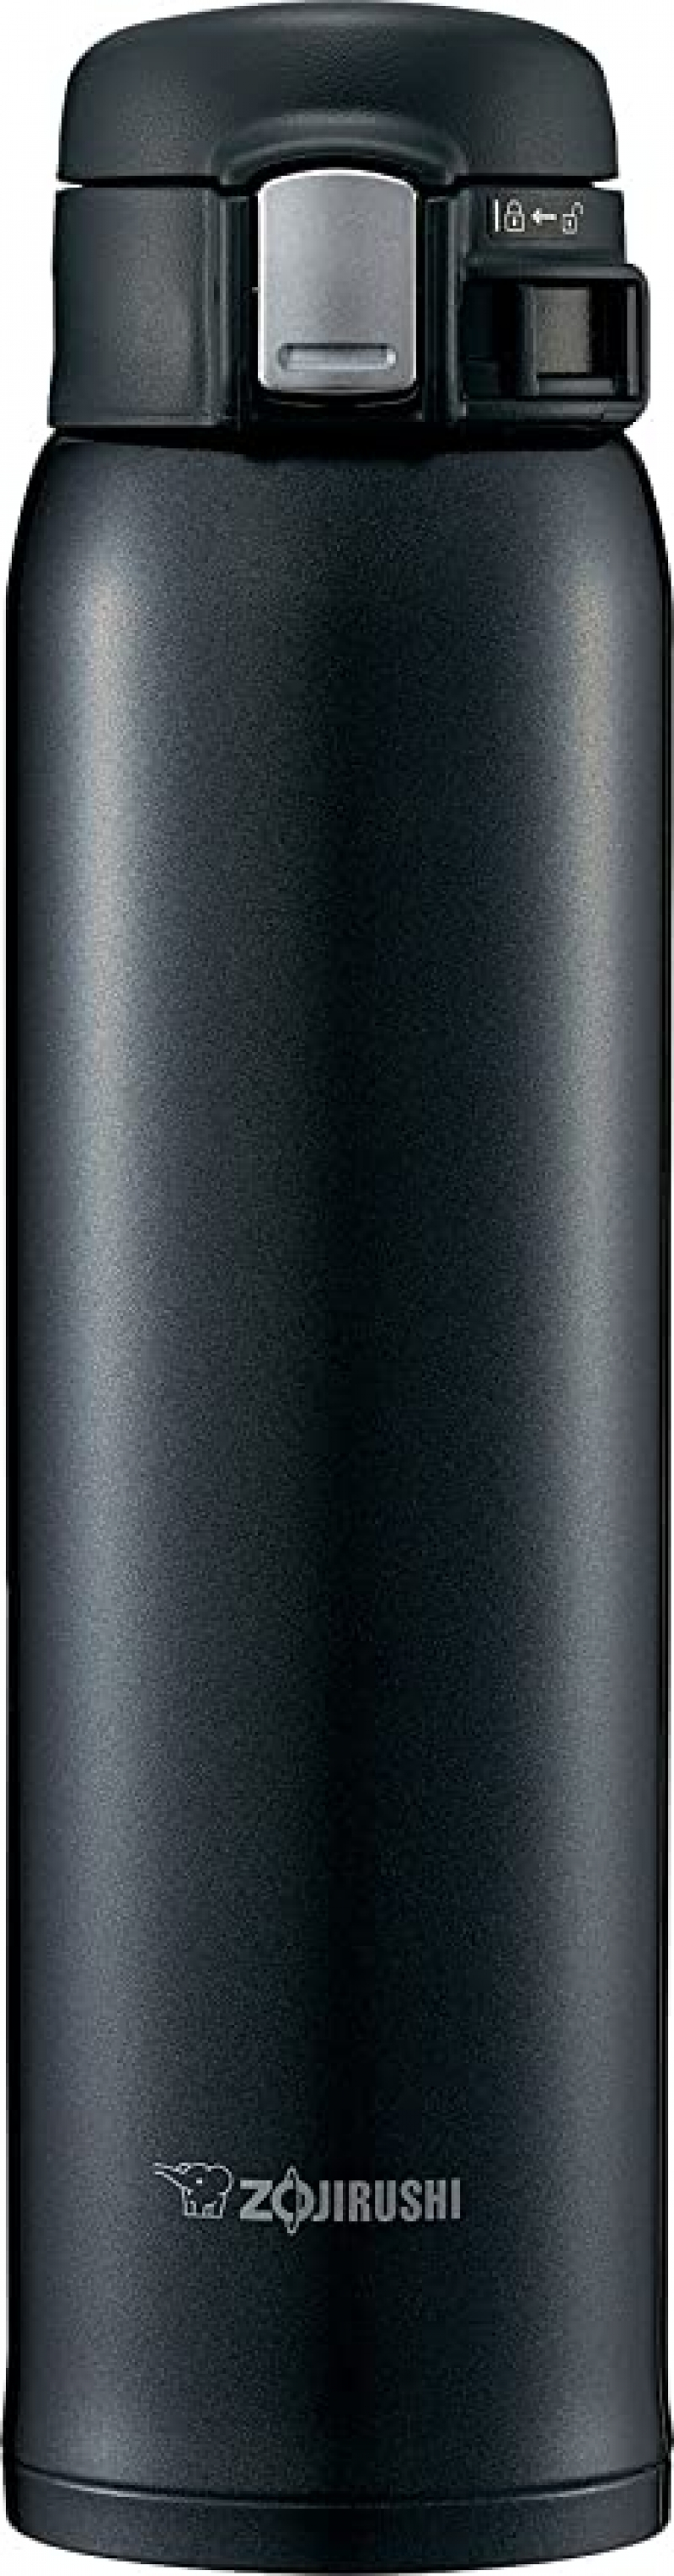 ihocon: Zojirushi SM-SD48BC Stainless Steel Vacuum Insulated Mug, 16-Ounce, Silky Black 不銹鋼保溫杯